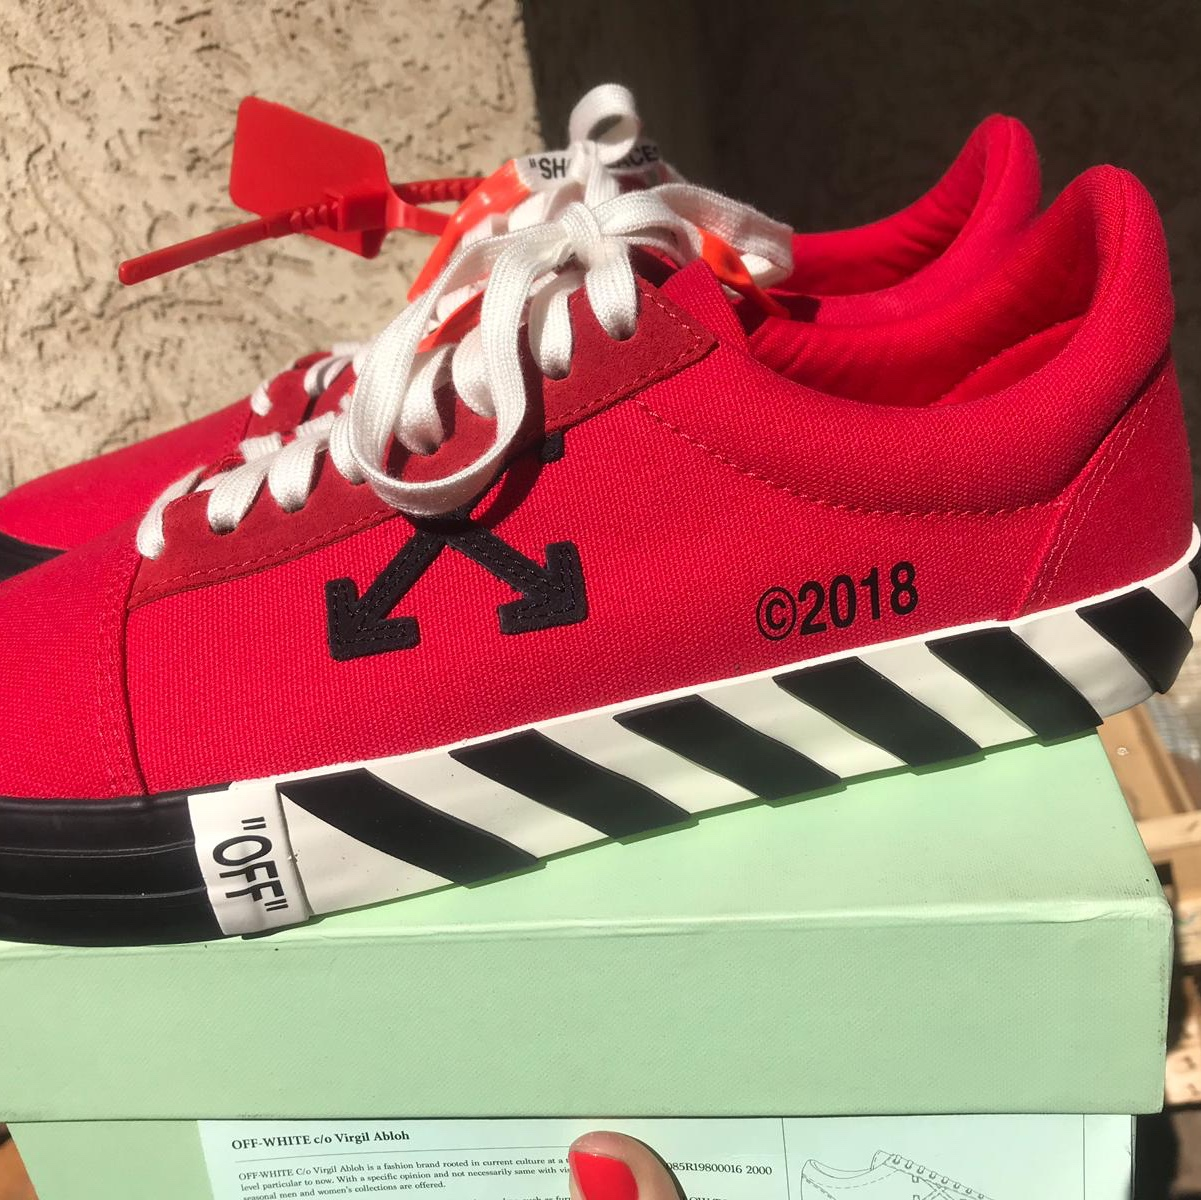 Off white vulc low red. DS. Dm for more